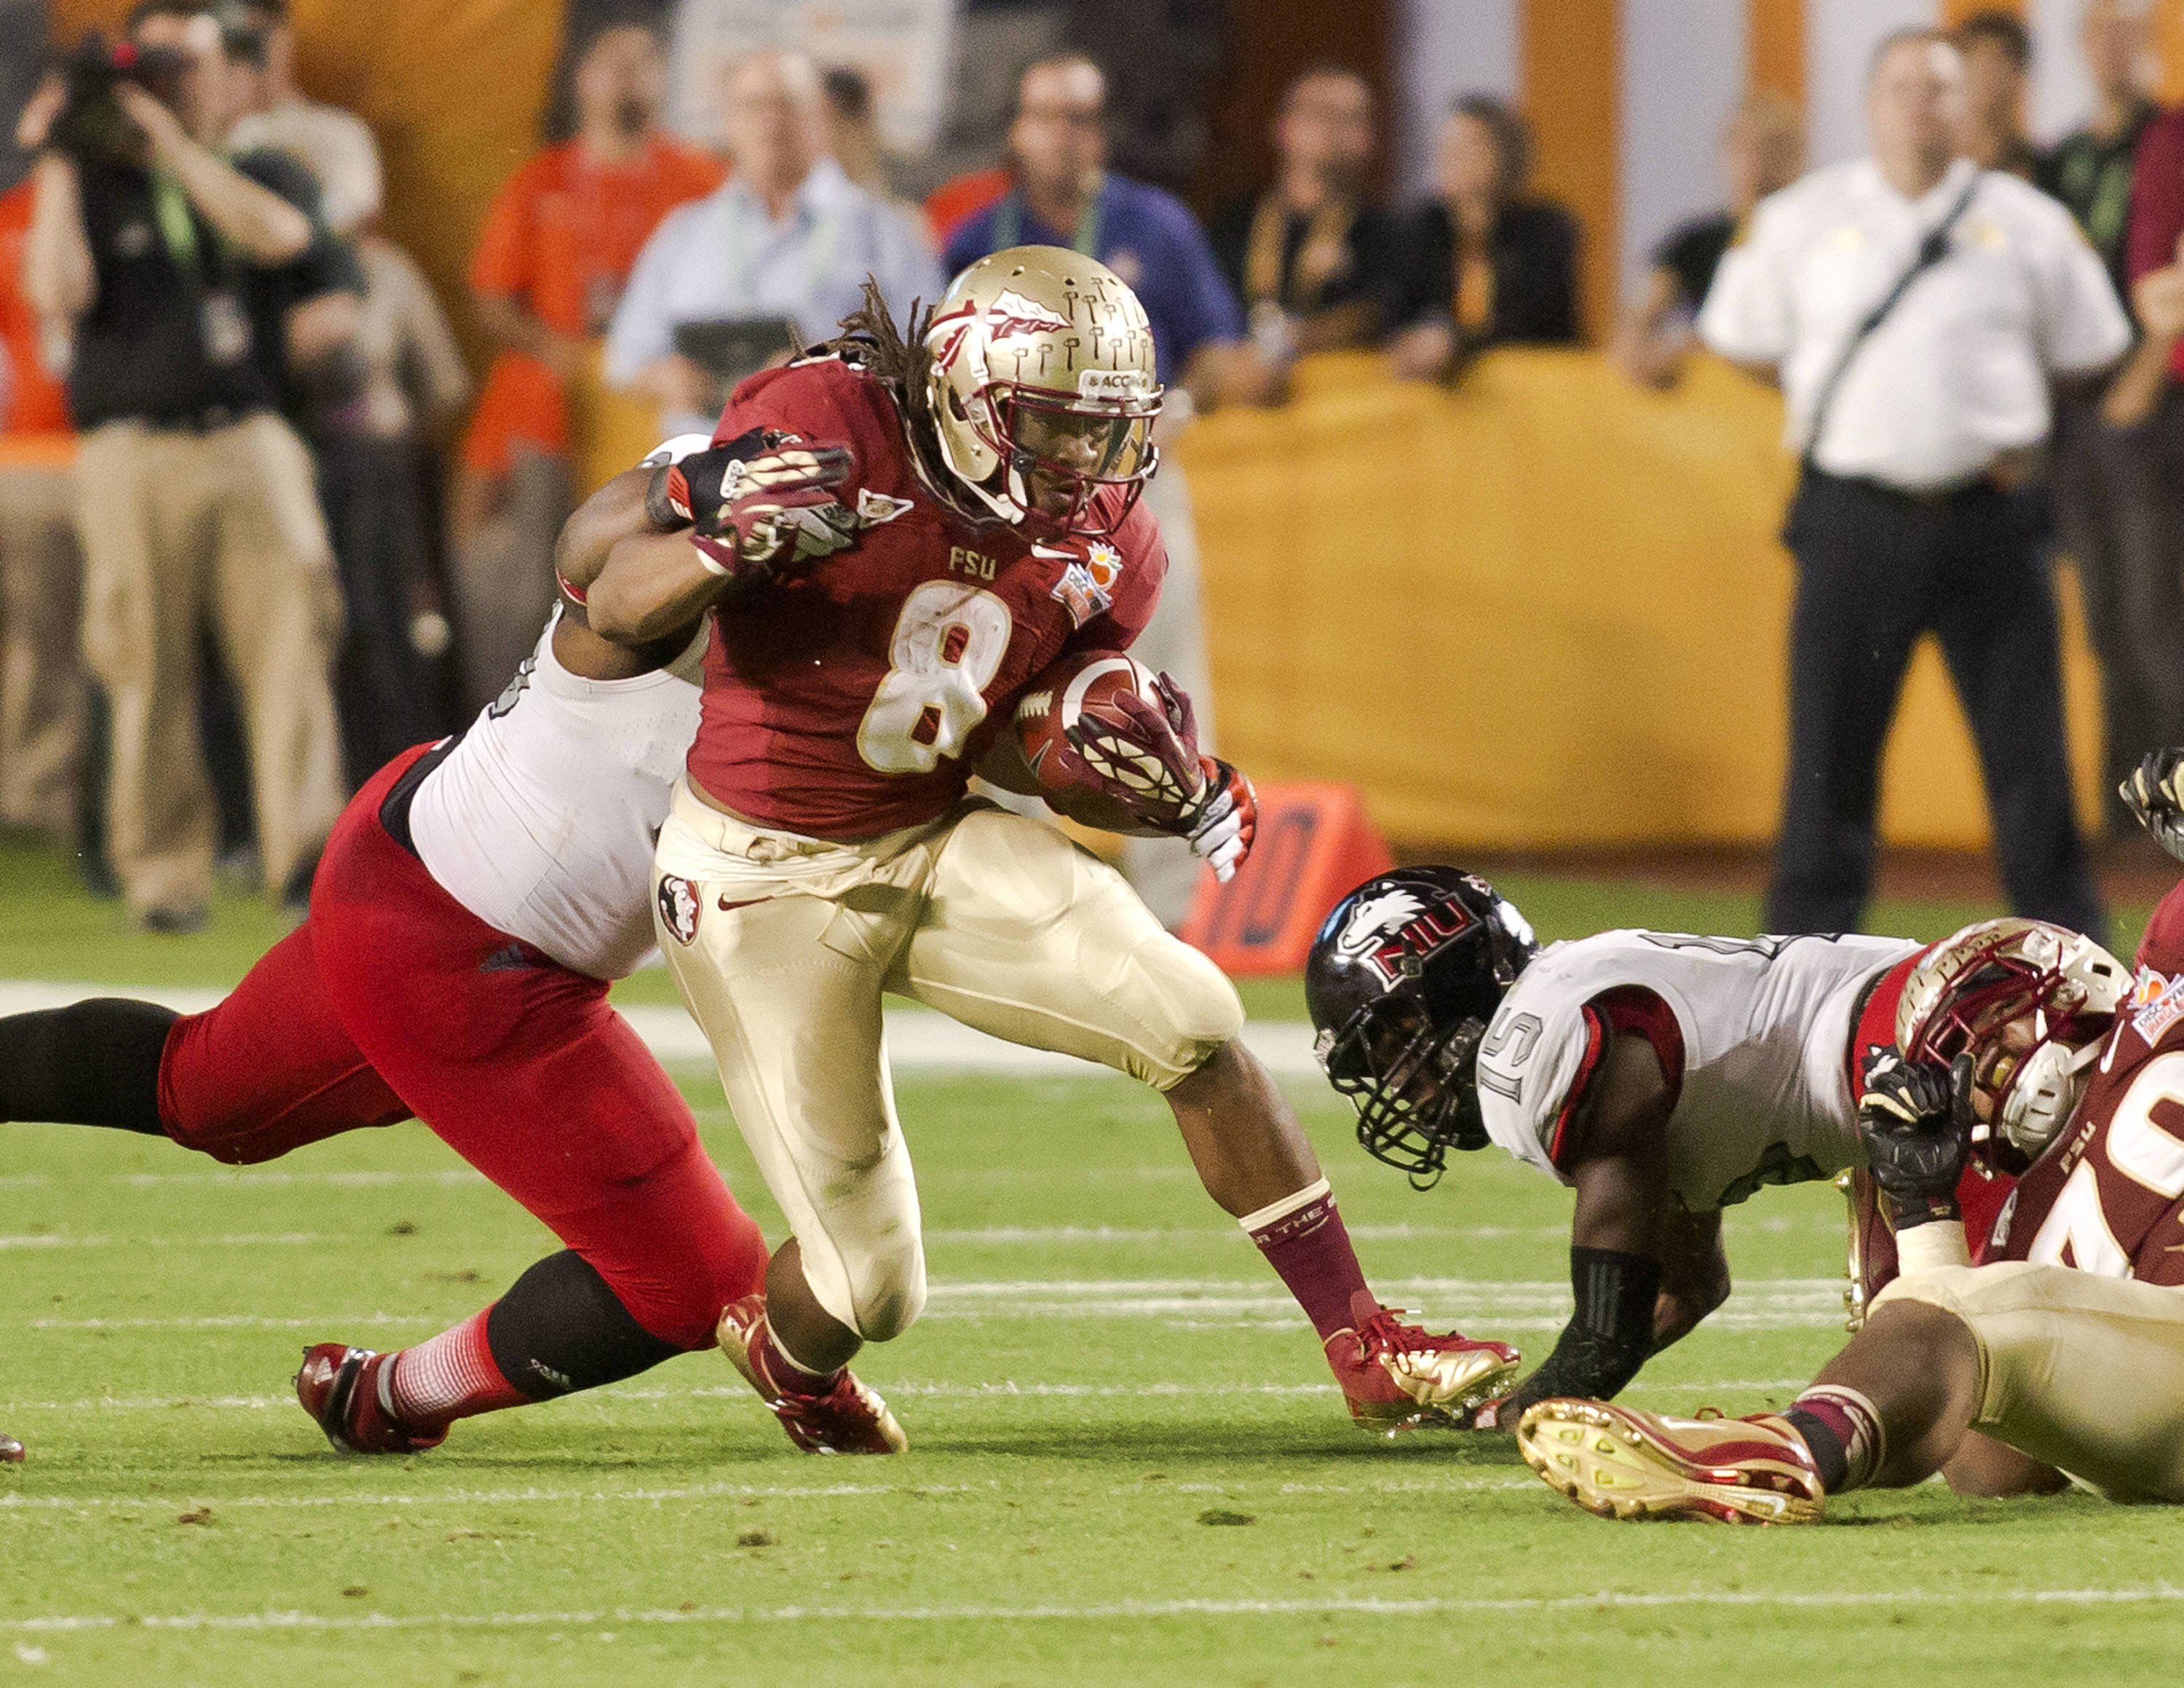 Devonta Freeman (8), FSU vs No. Illinois, 01/01/13. (Photo by Steve Musco)